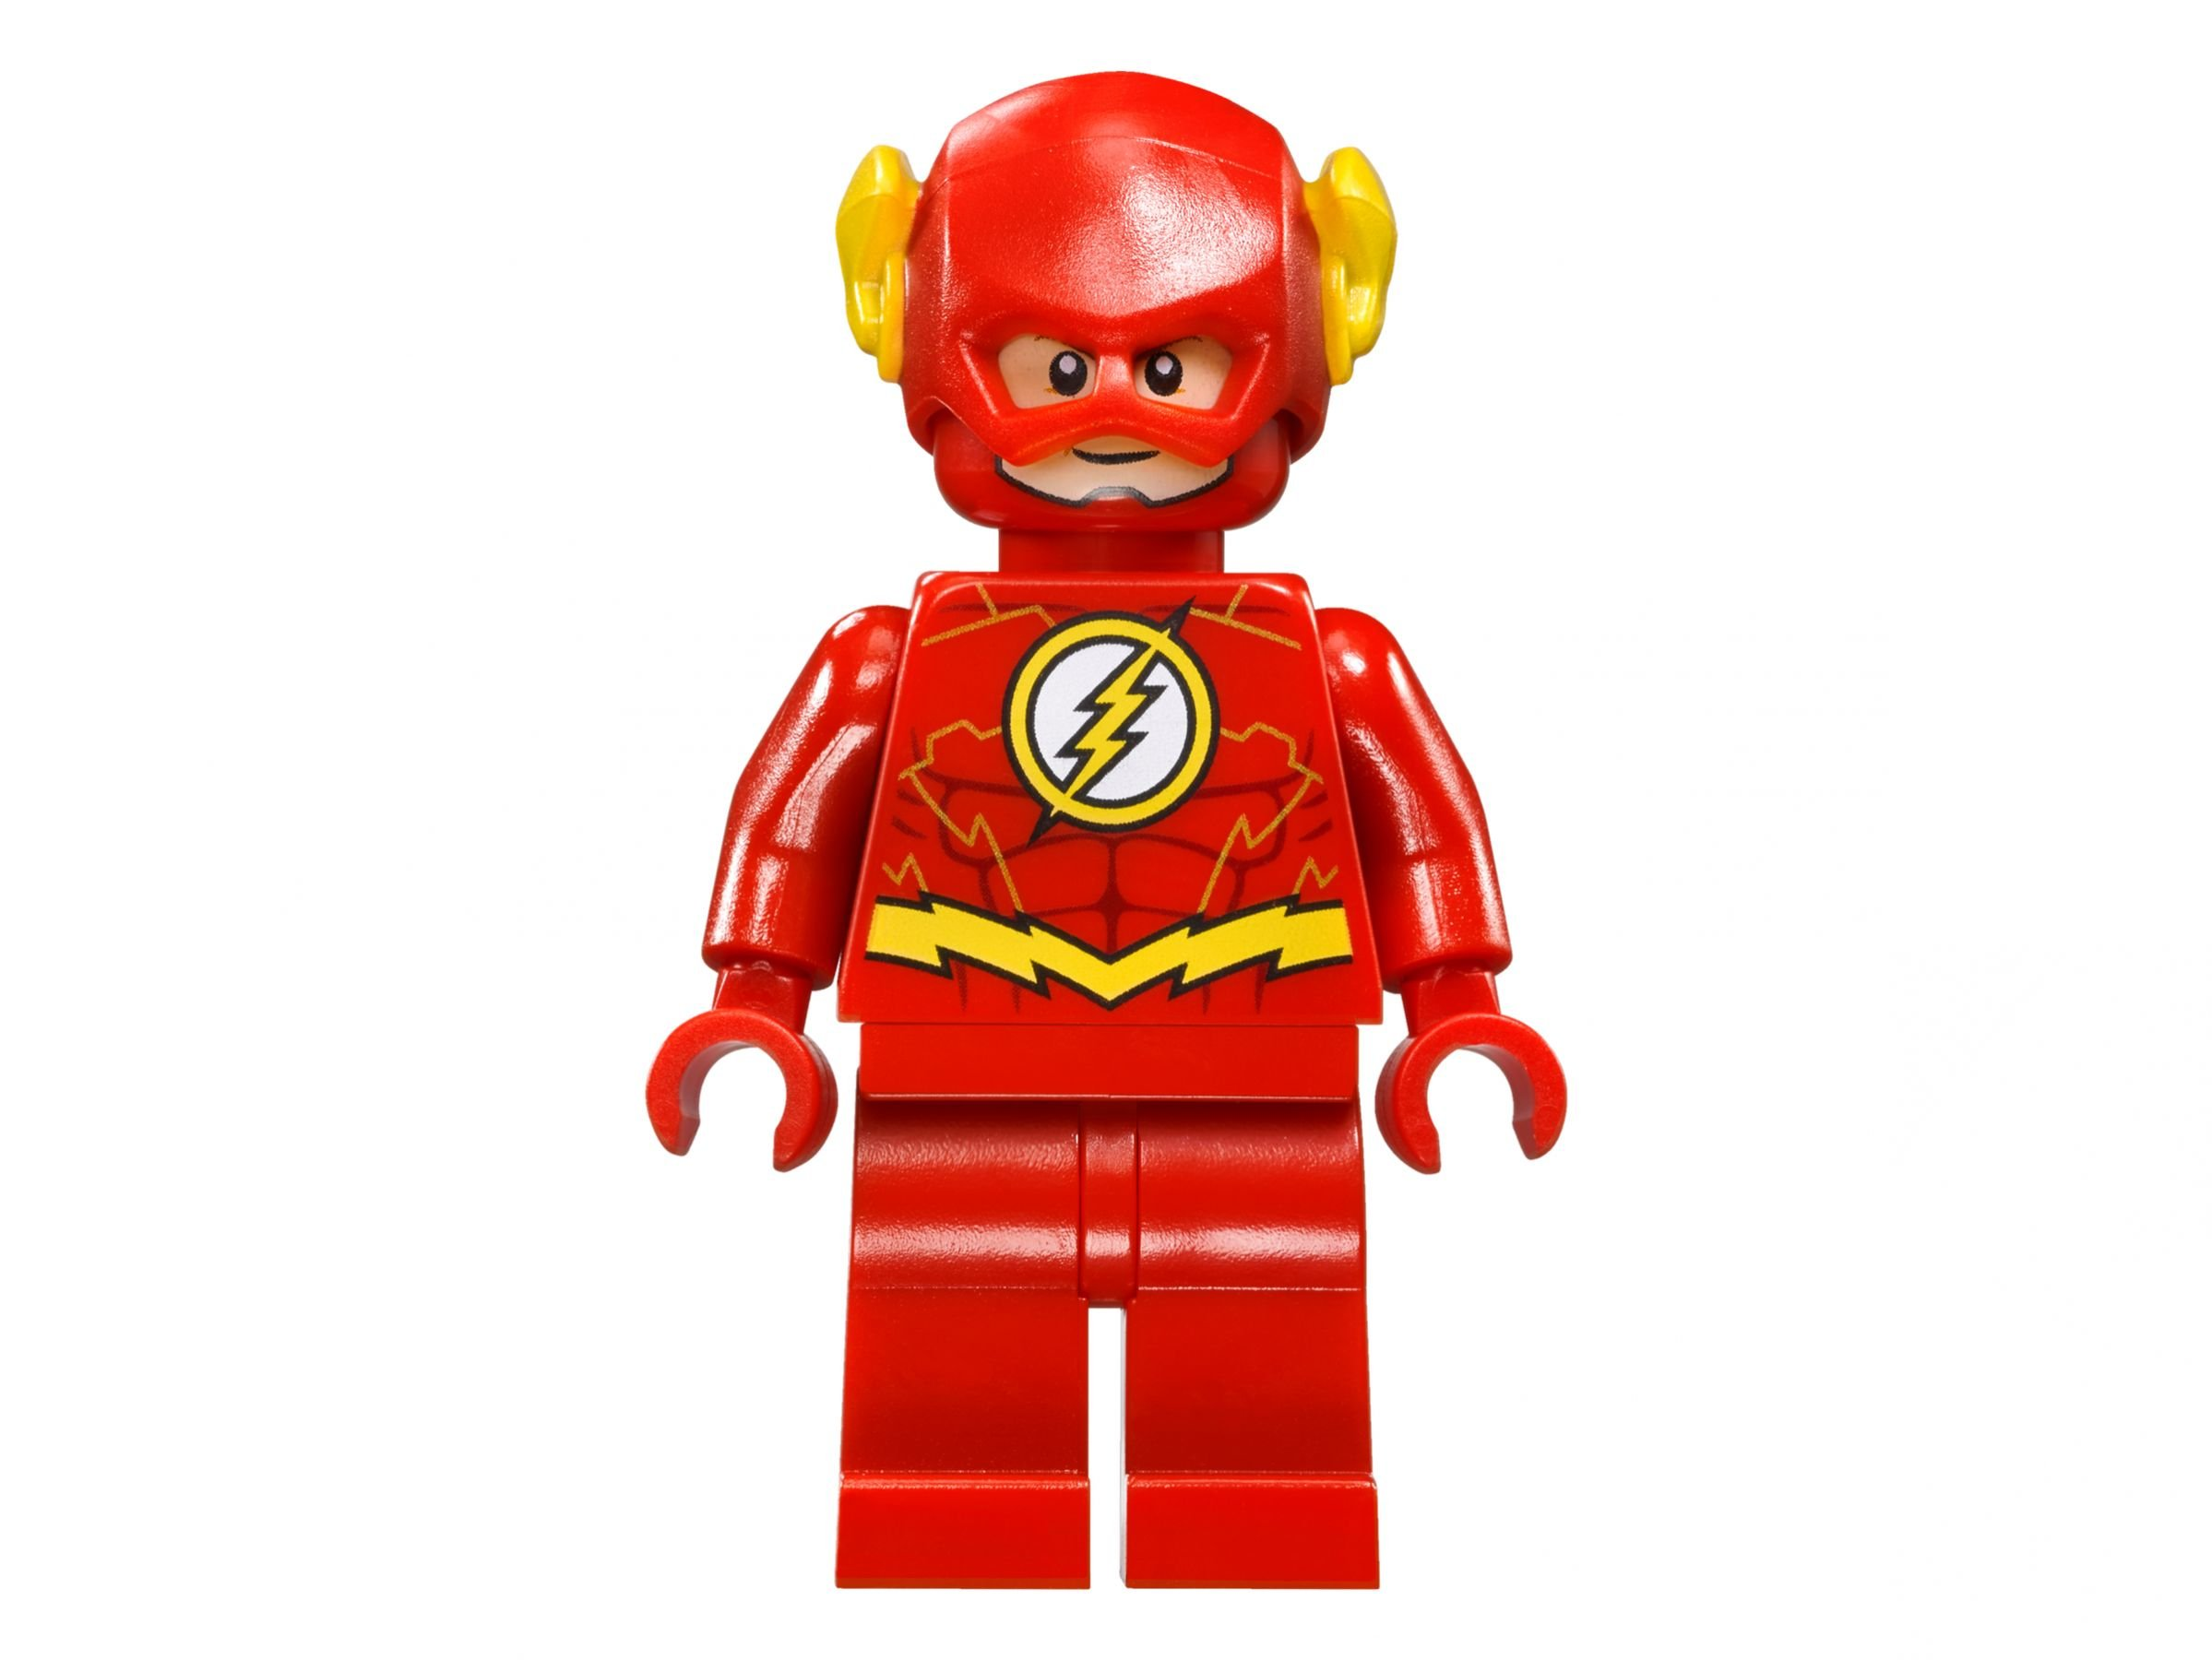 LEGO Super Heroes 76098 Speed Force Freeze Verfolgungsjagd LEGO_76098_alt5.jpg